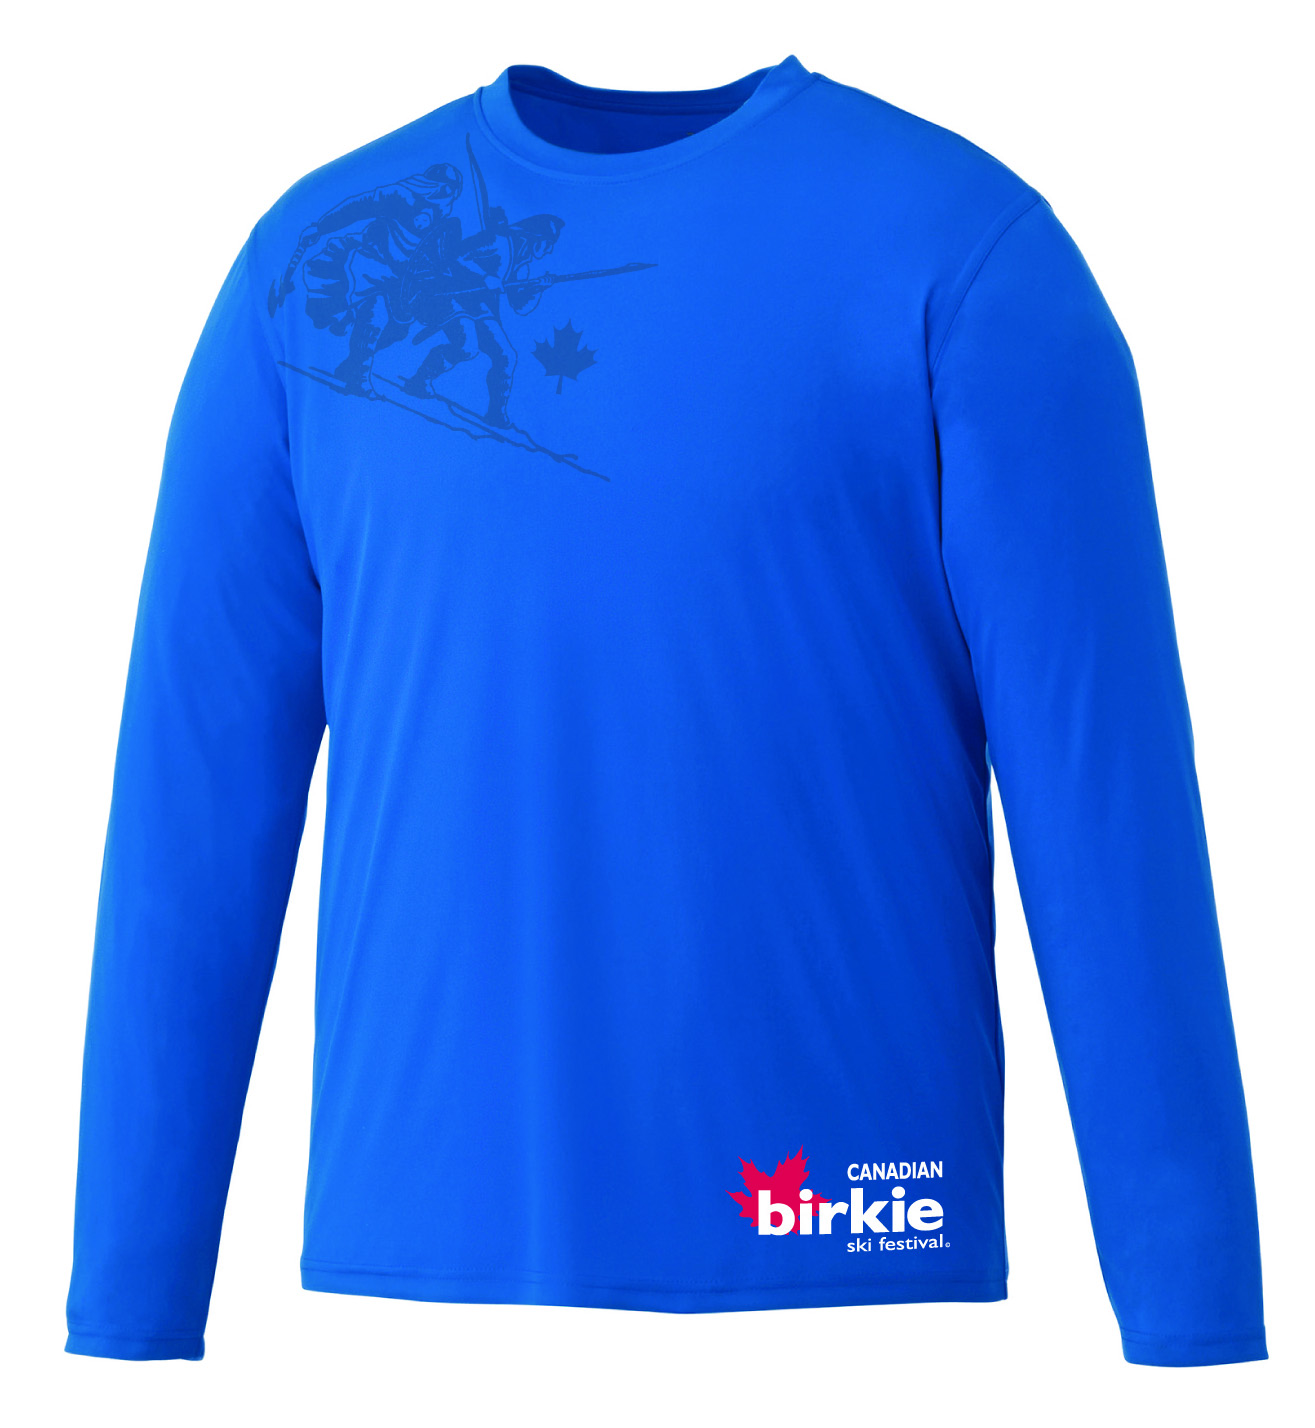 Birkie Blue Long Sleeve Tech Shirt